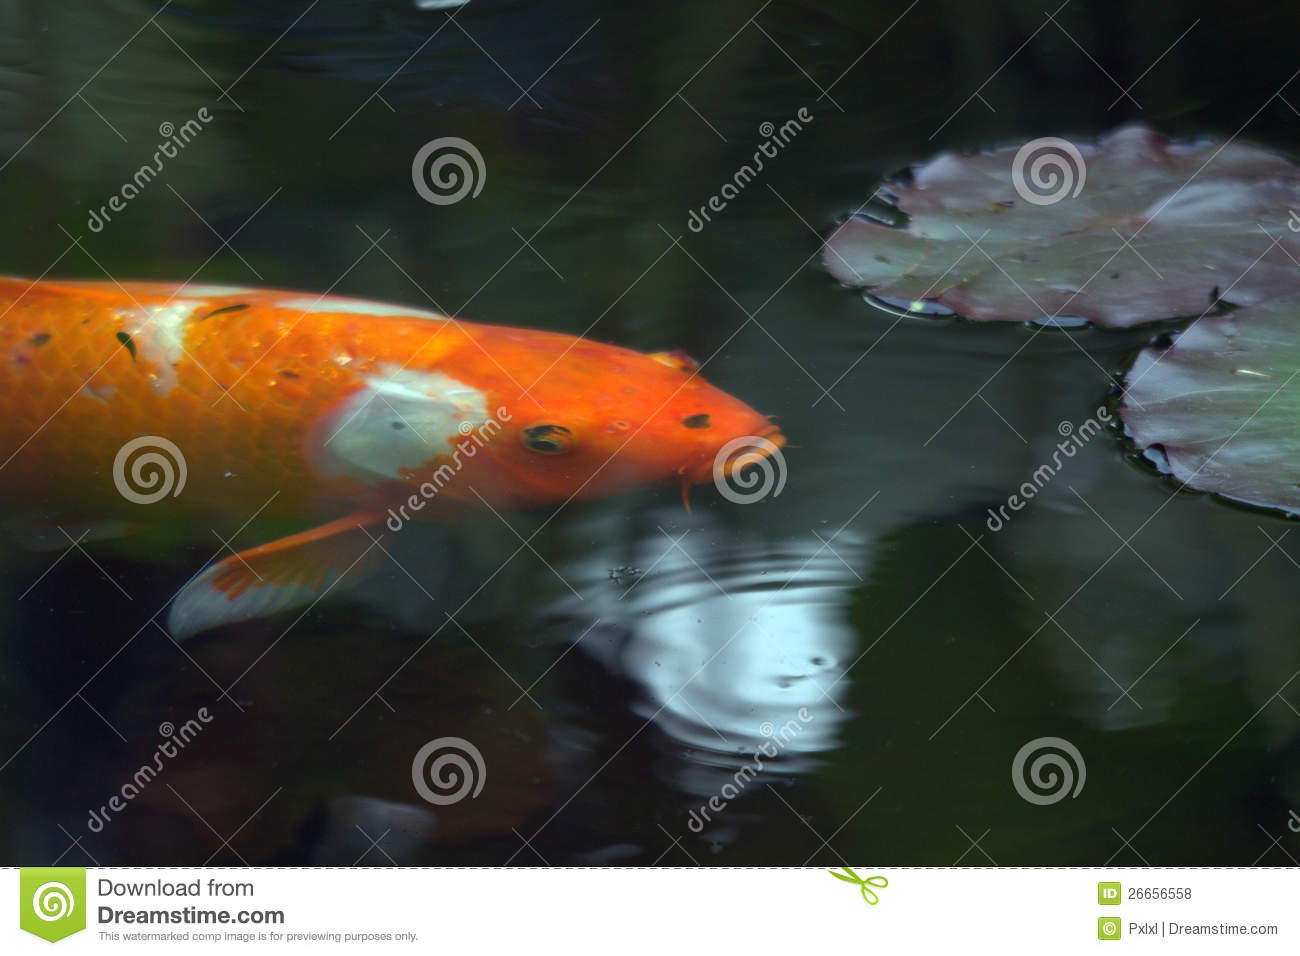 Decorative carp or koi royalty free stock photos image 26656558 - Decoratie kooi ...